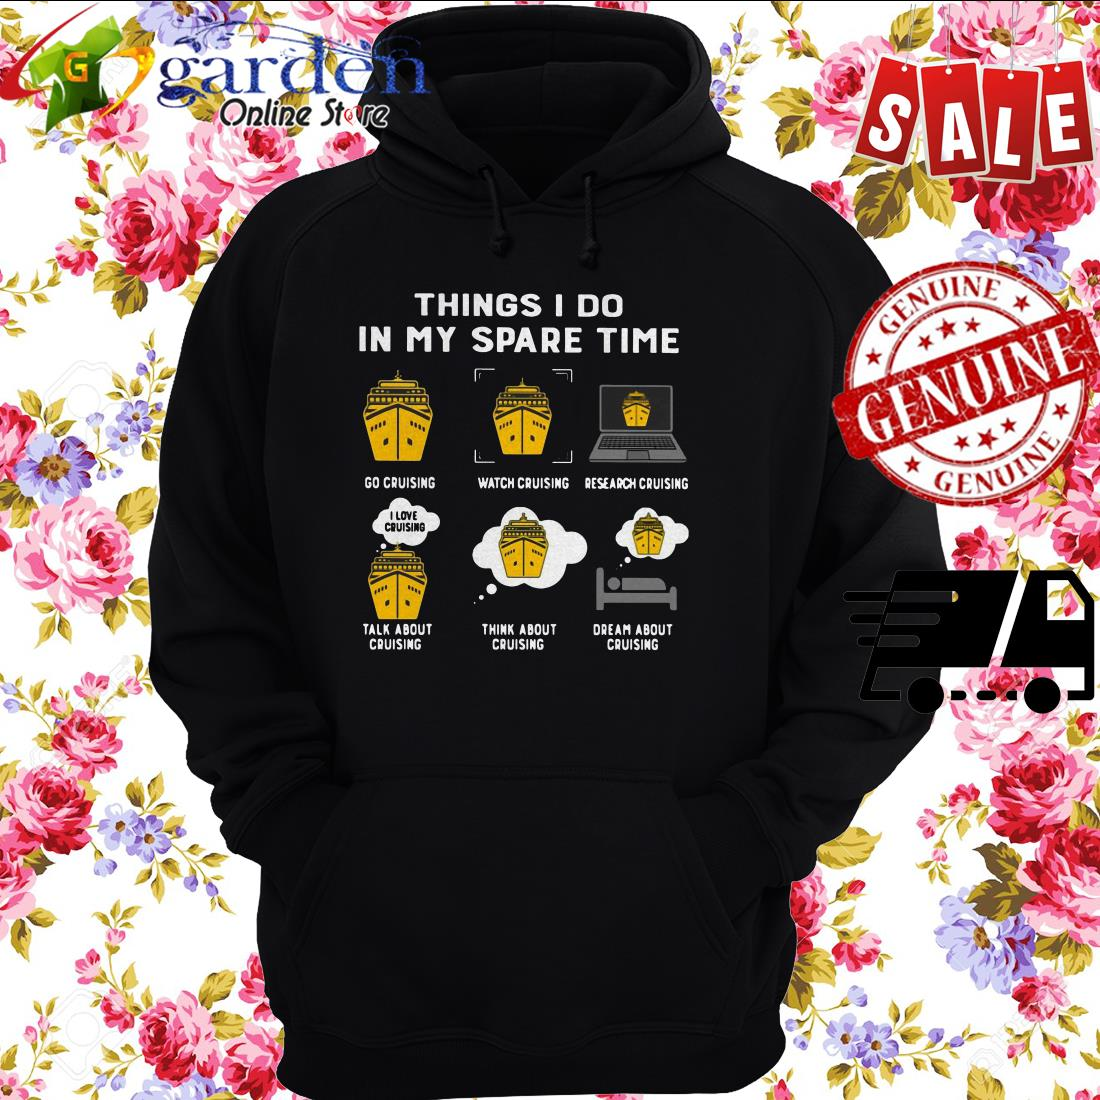 Things I Do In My Spare Time Go Cruising Watch Cruising hoodie